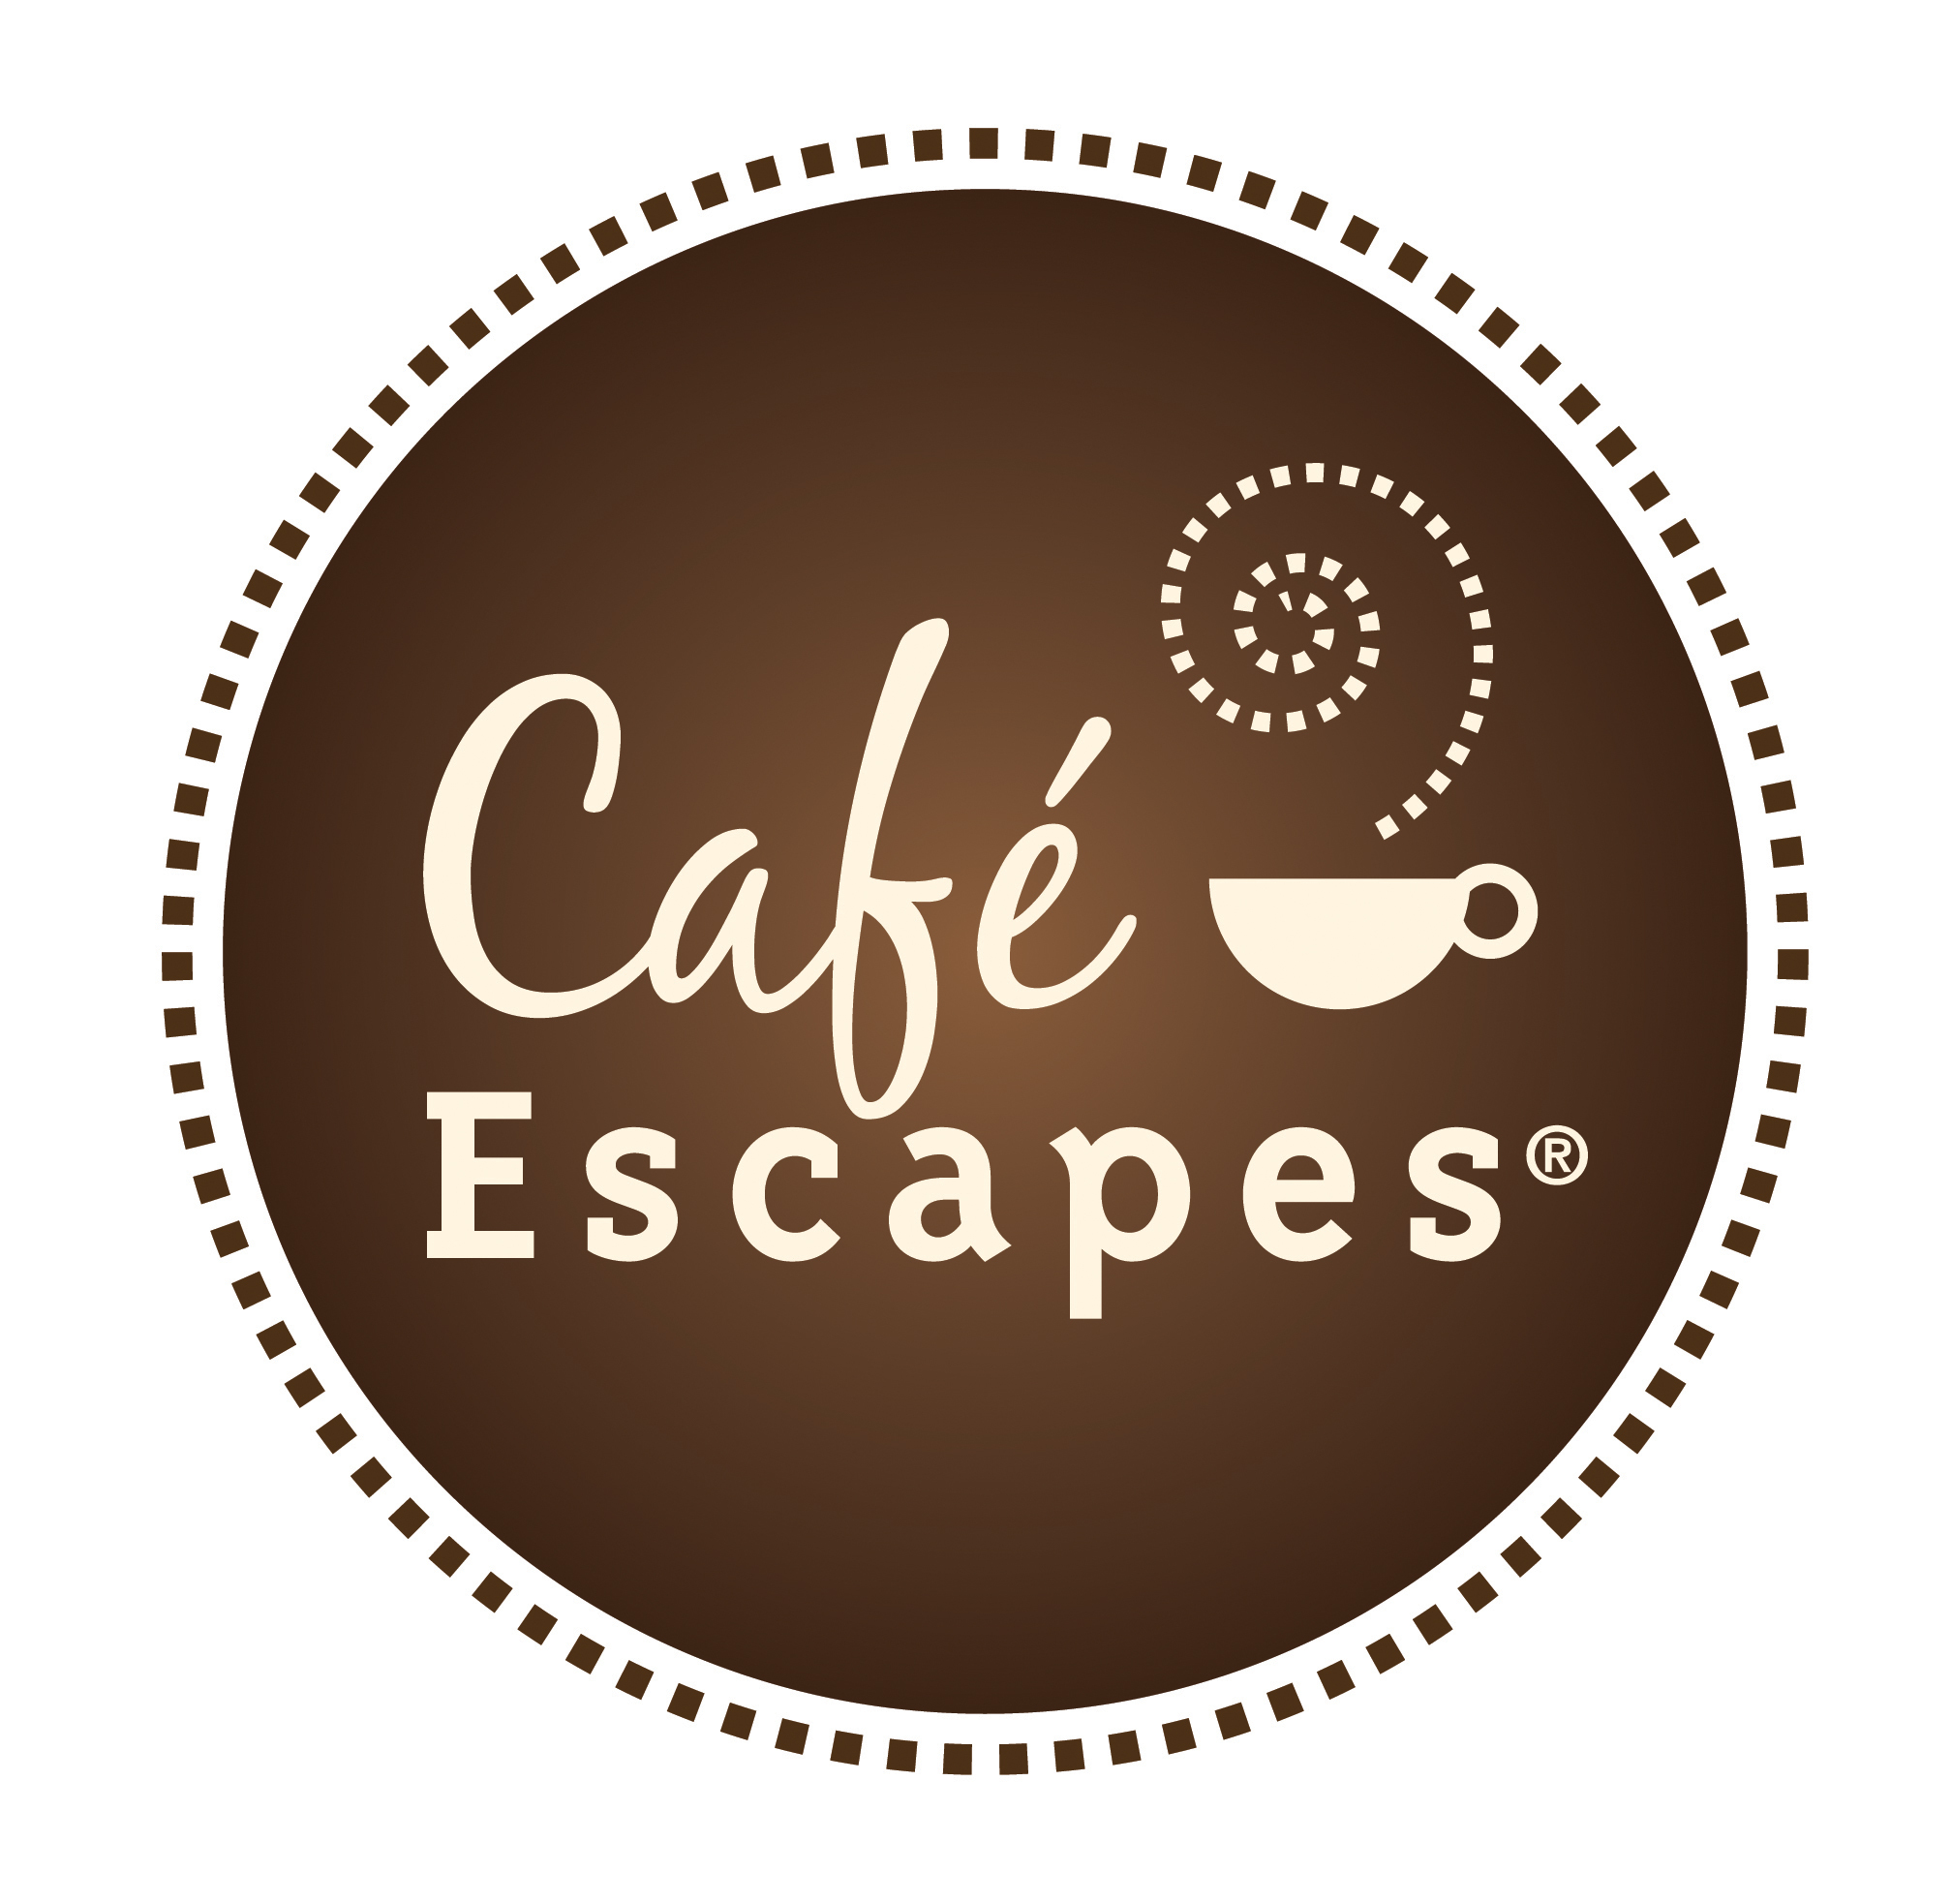 The-Coffee-Delivery-Company-Cafe-Escapes-Coffee-blog